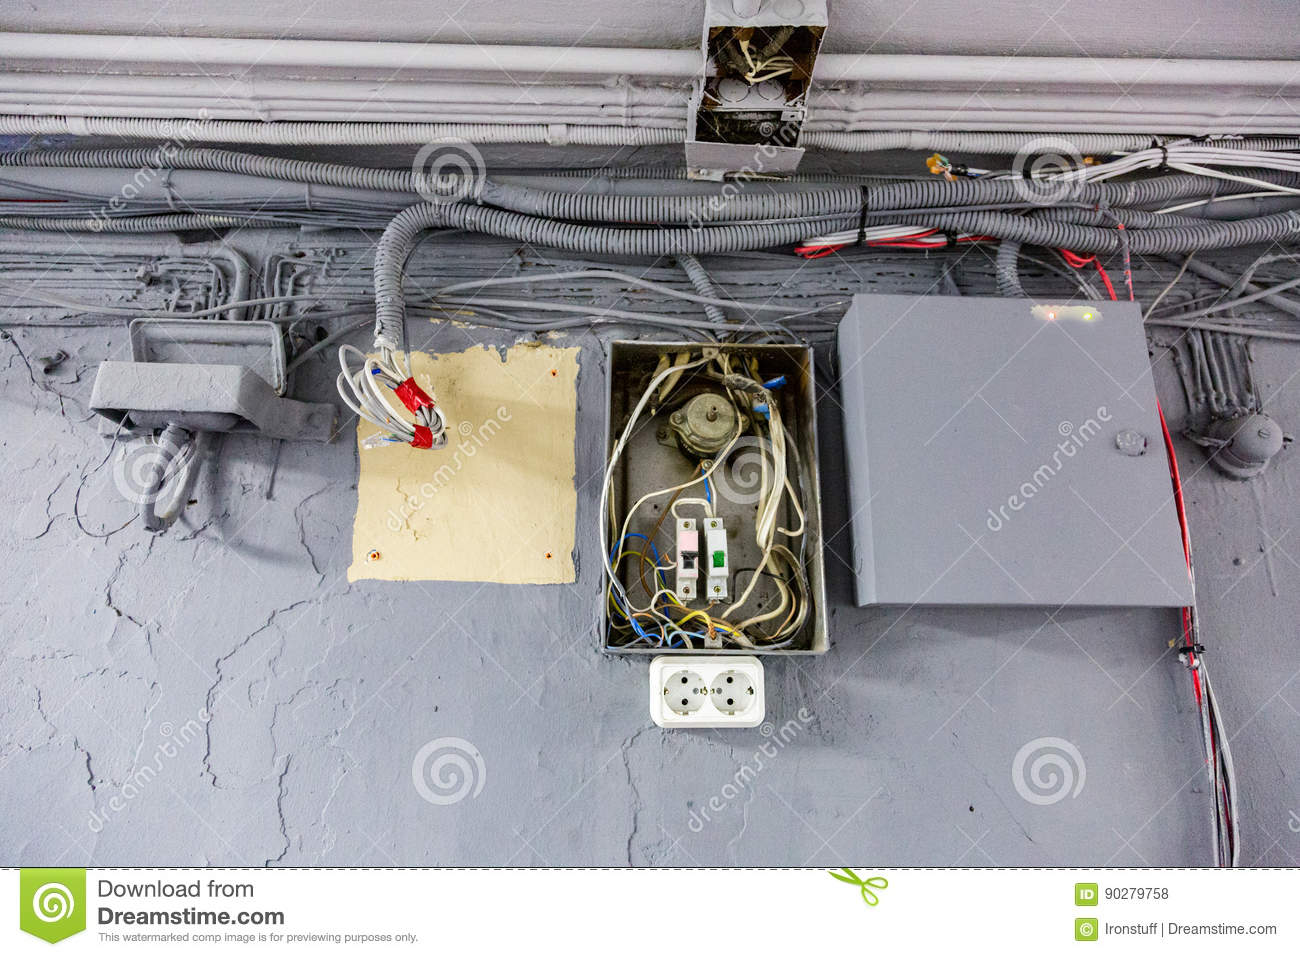 Old Electrical Wiring Dangerous Trusted Diagrams Stock Photo Image Of Vintage Unsafe